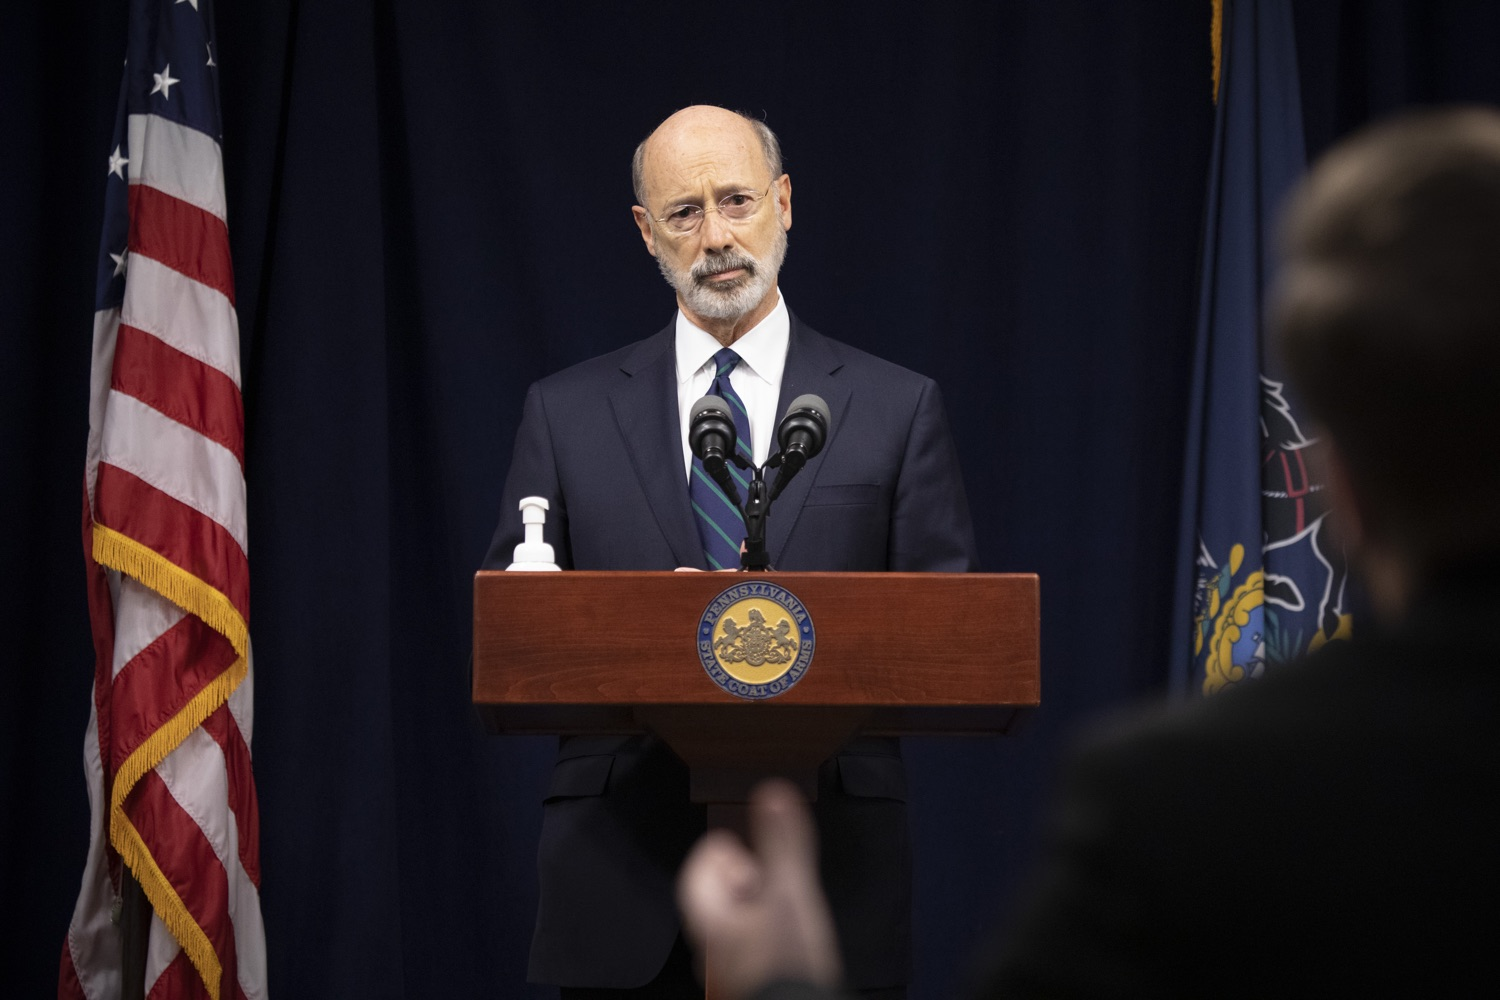 """<a href=""""https://filesource.wostreaming.net/commonwealthofpa/photo/18239_gov_recMarijuana_dz_009.jpg"""" target=""""_blank"""">⇣Download Photo<br></a>Pennsylvania Governor Tom Wolf speaking with the press. Governor Tom Wolf and Lt. Governor John Fetterman today called on the legislature to take up the legalization of adult-use cannabis to help with the states economic recovery amid COVID-19. Legalization will also create more outlets for important restorative justice programs in the commonwealth.  Harrisburg, PA  Sept. 3, 2020"""